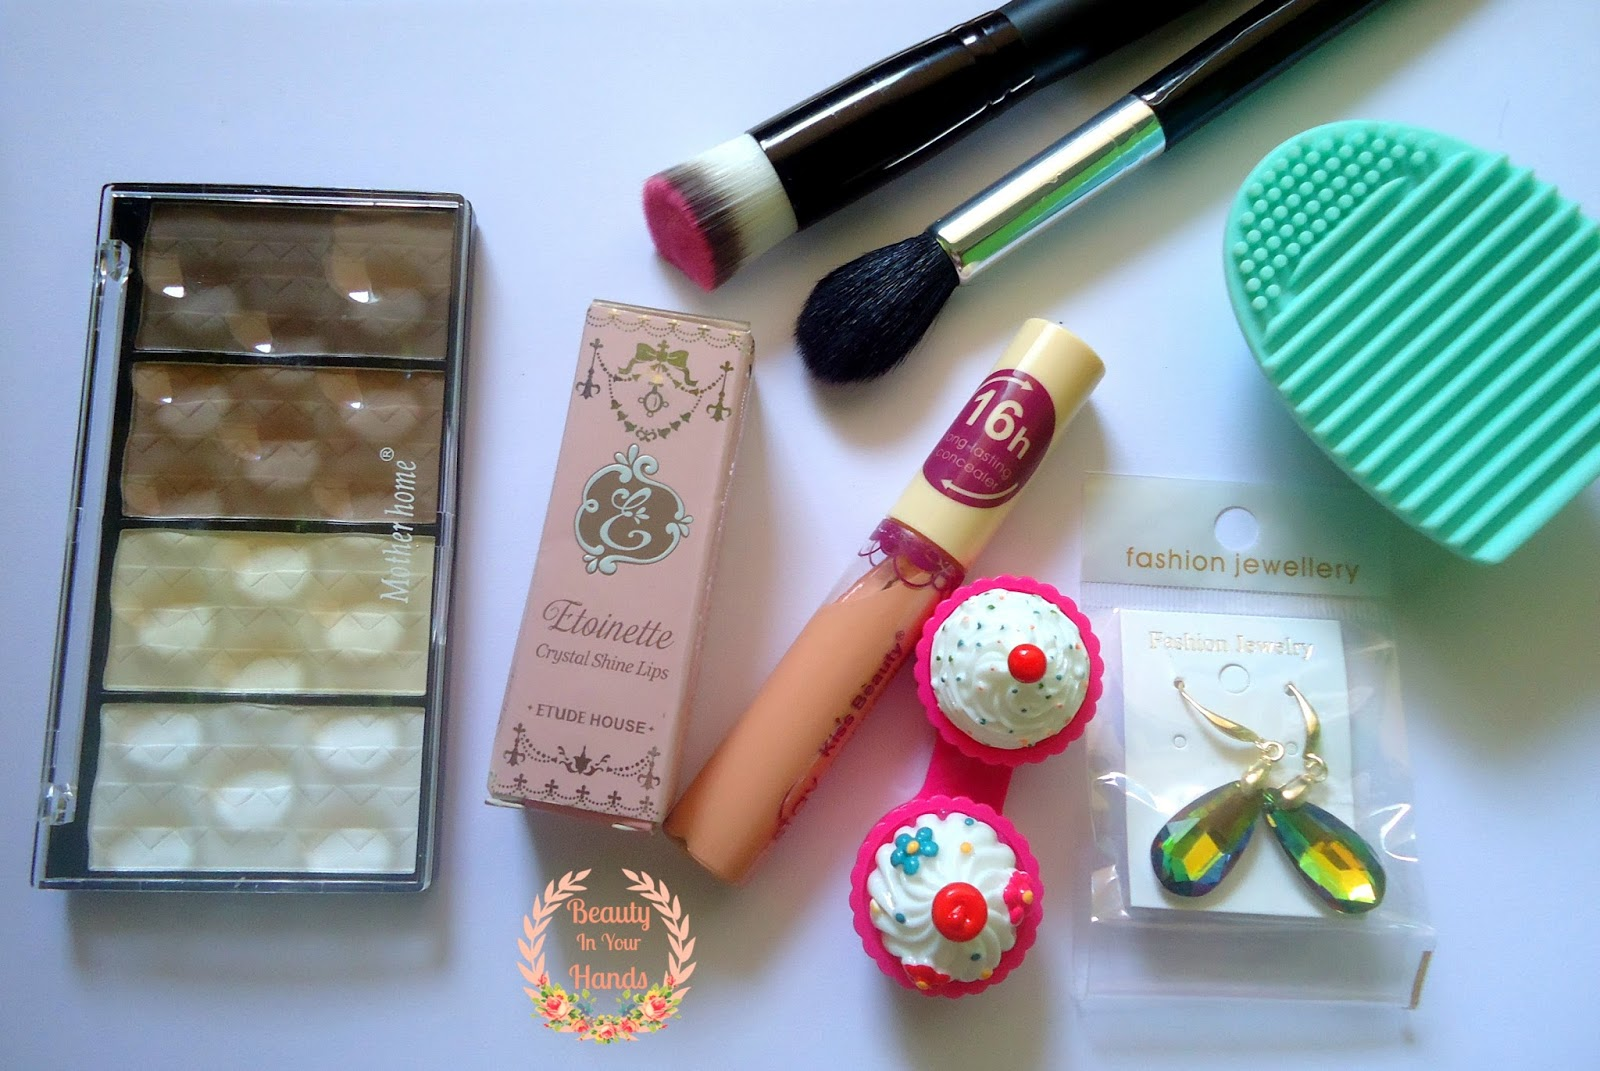 af77014fa3 Beauty In Your Hands  AliExpress Haul